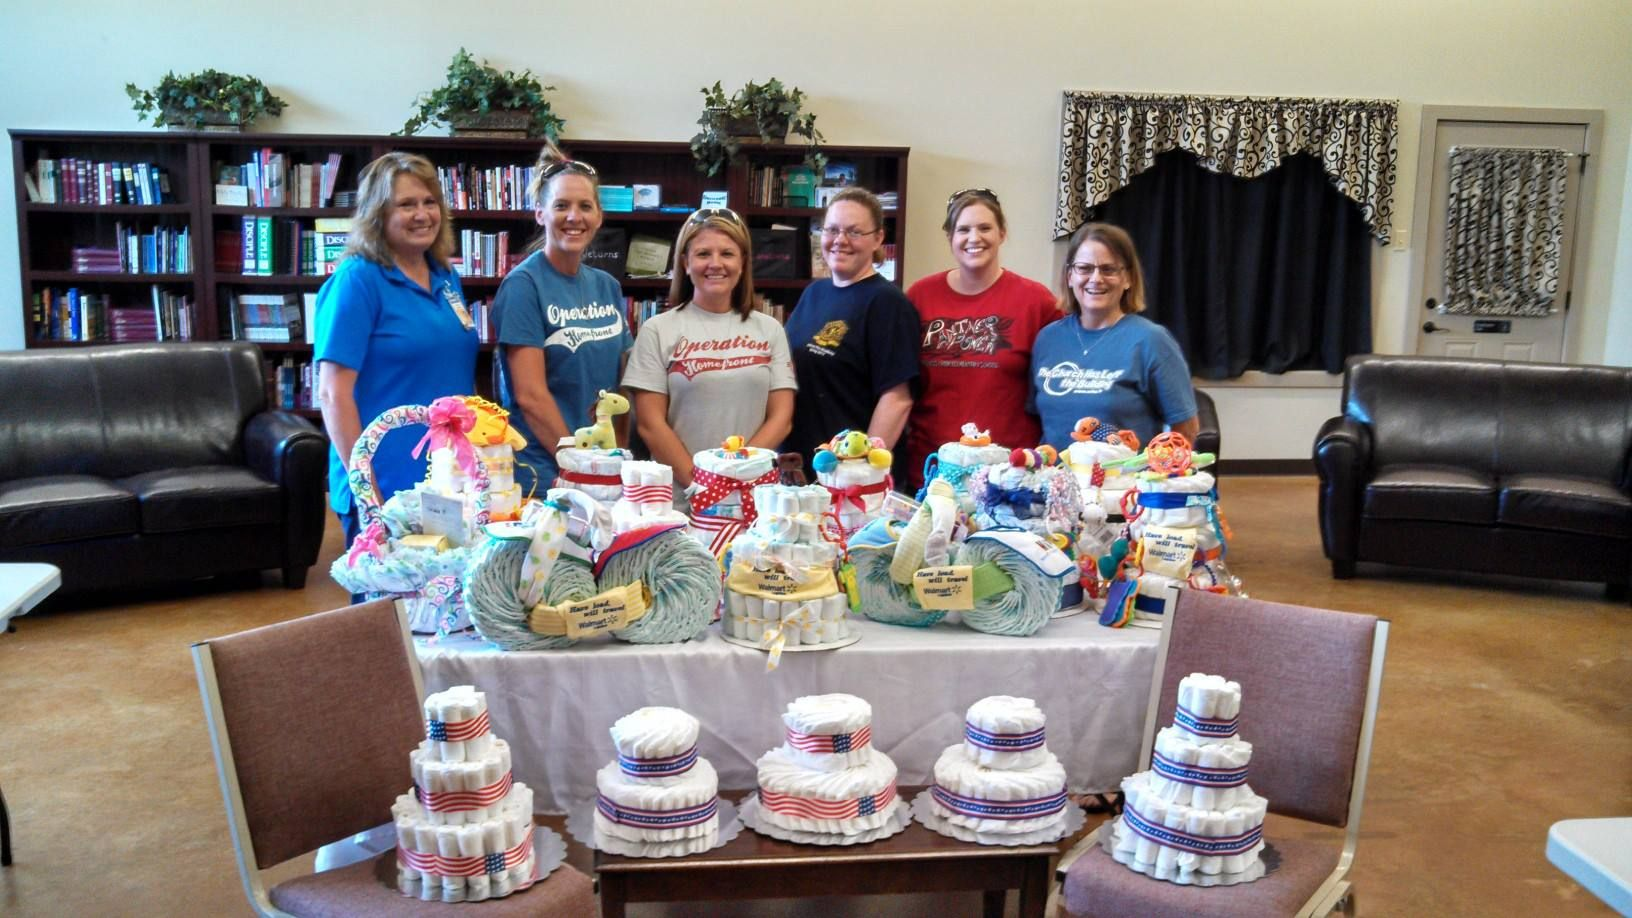 Thank You To All The Volunteers That Came Out To Help Make Diaper